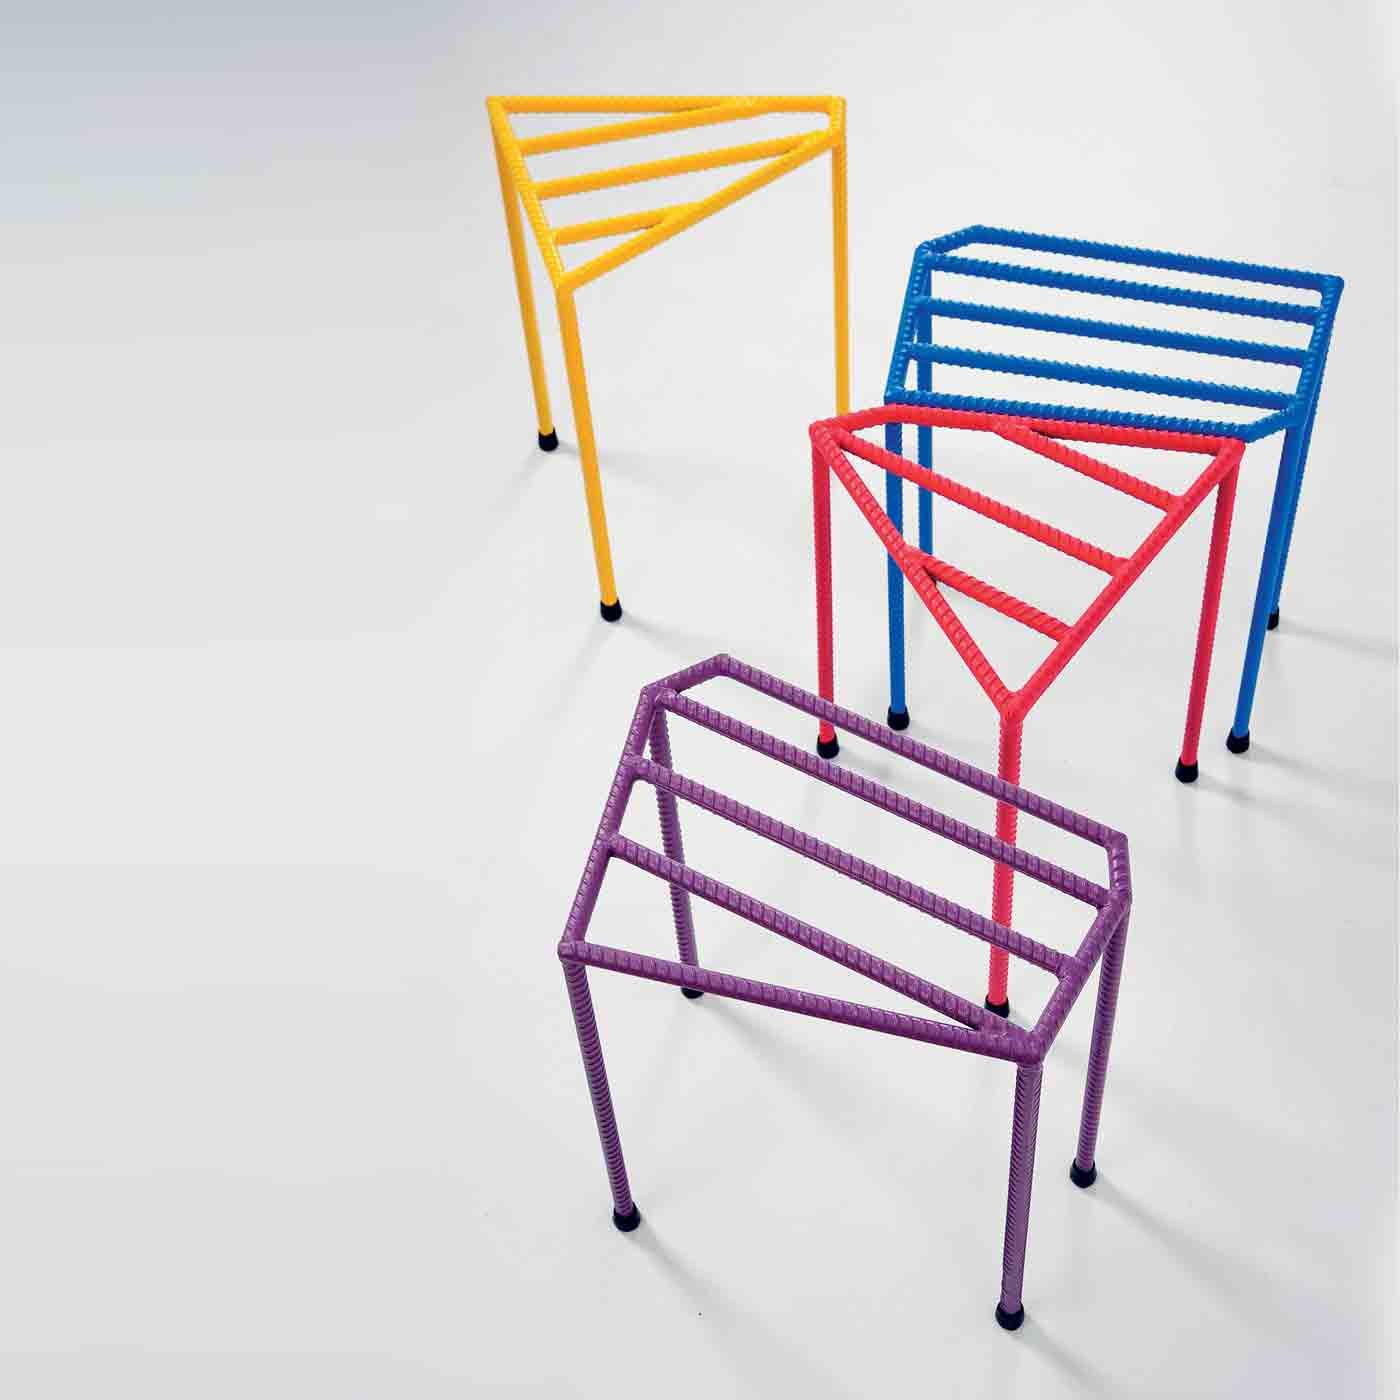 STEEL BAR COMBINATION STOOL